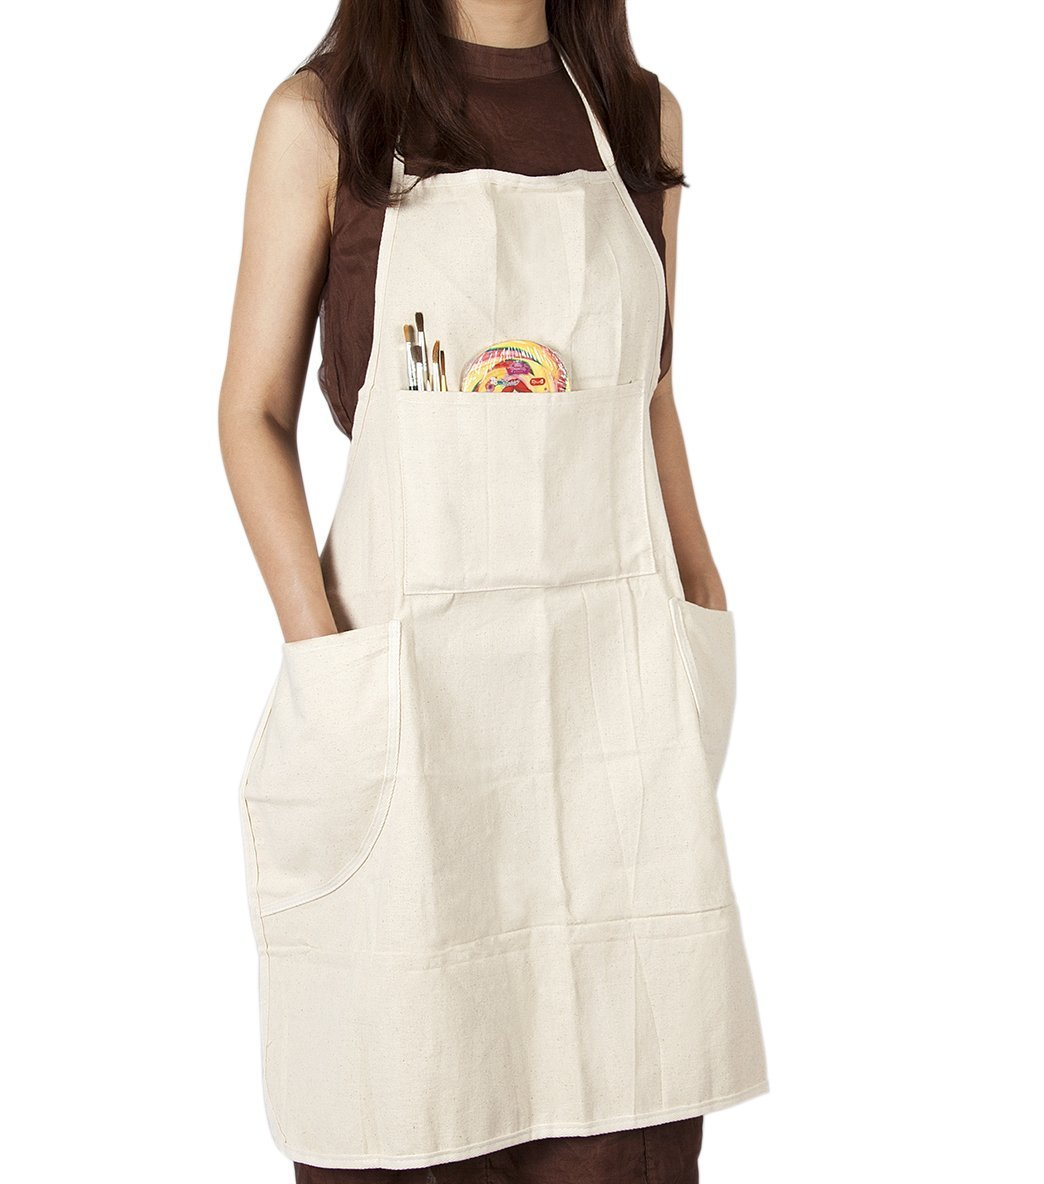 Swaroser CONDA Cotton Canvas Professinal Bib Apron with 4 Pockets for Women Men Adults,Waterproof,Natural 31inch by 27inch (1PC Pack) HAOZHOU CANDA002-1